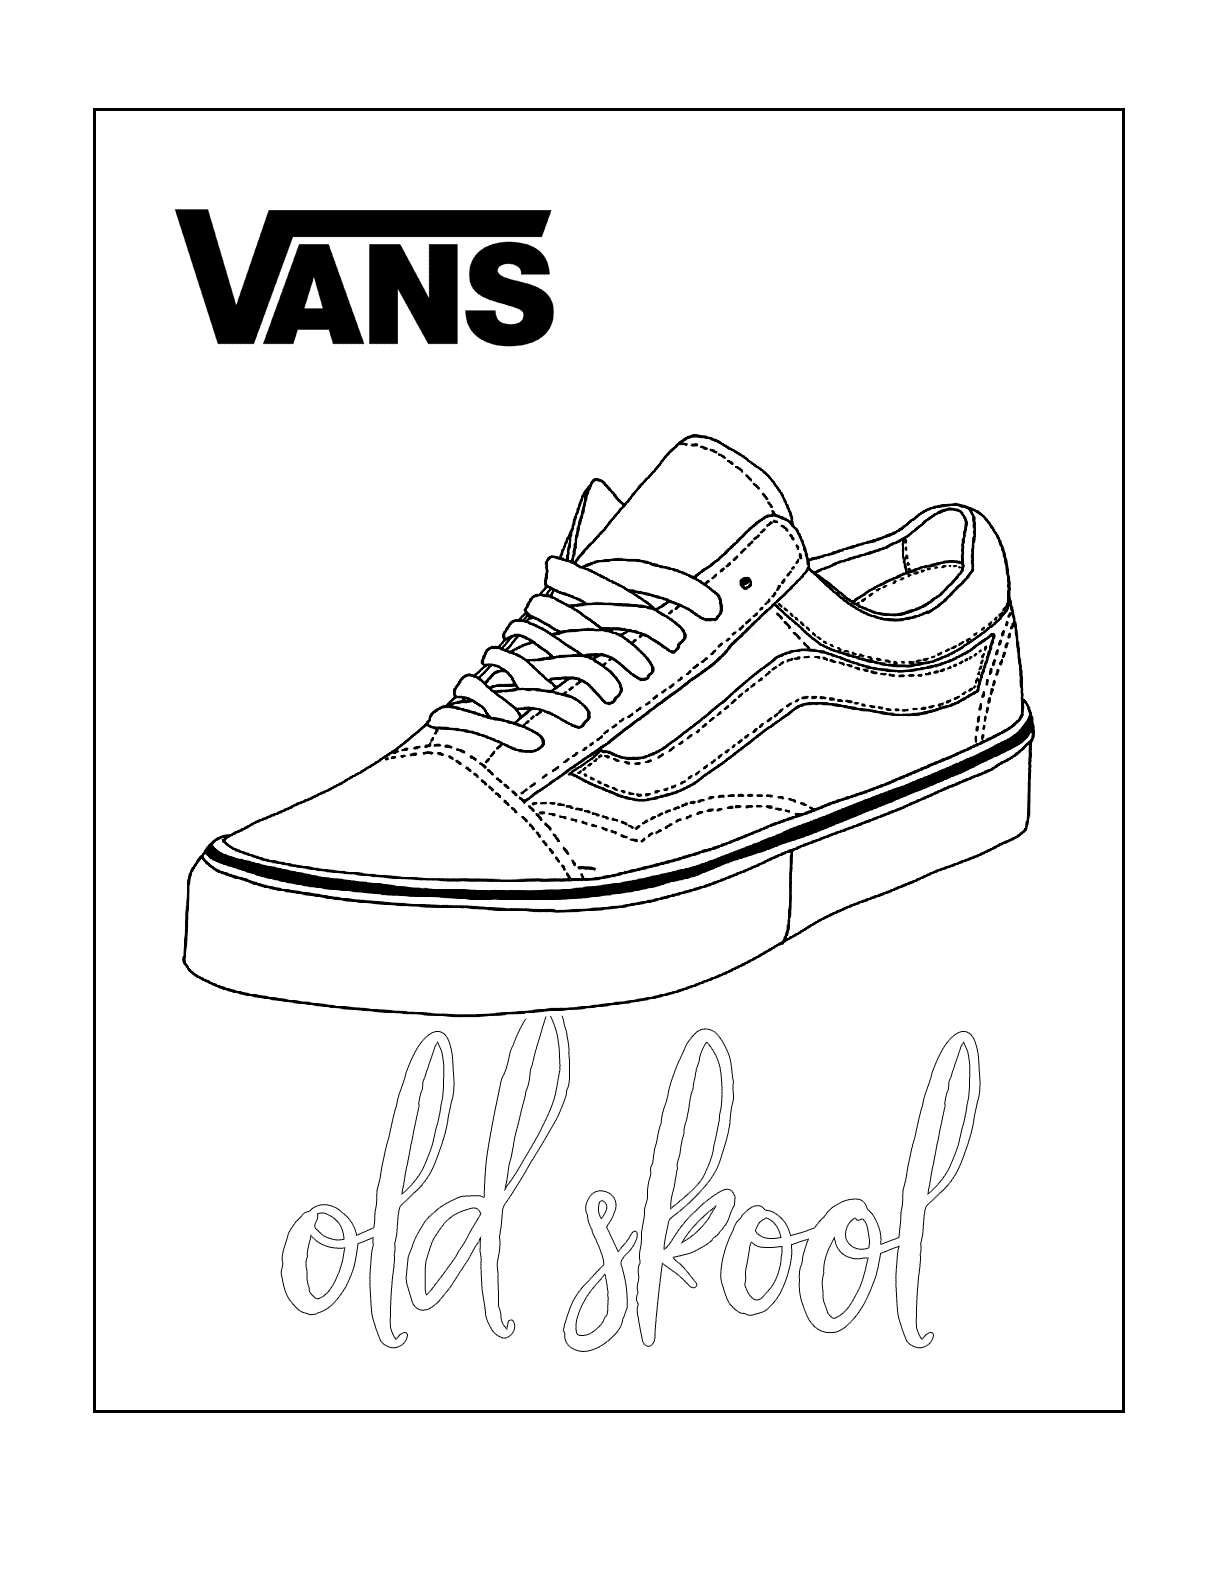 coloring pages of shoes shoe coloring pages to download and print for free of pages coloring shoes